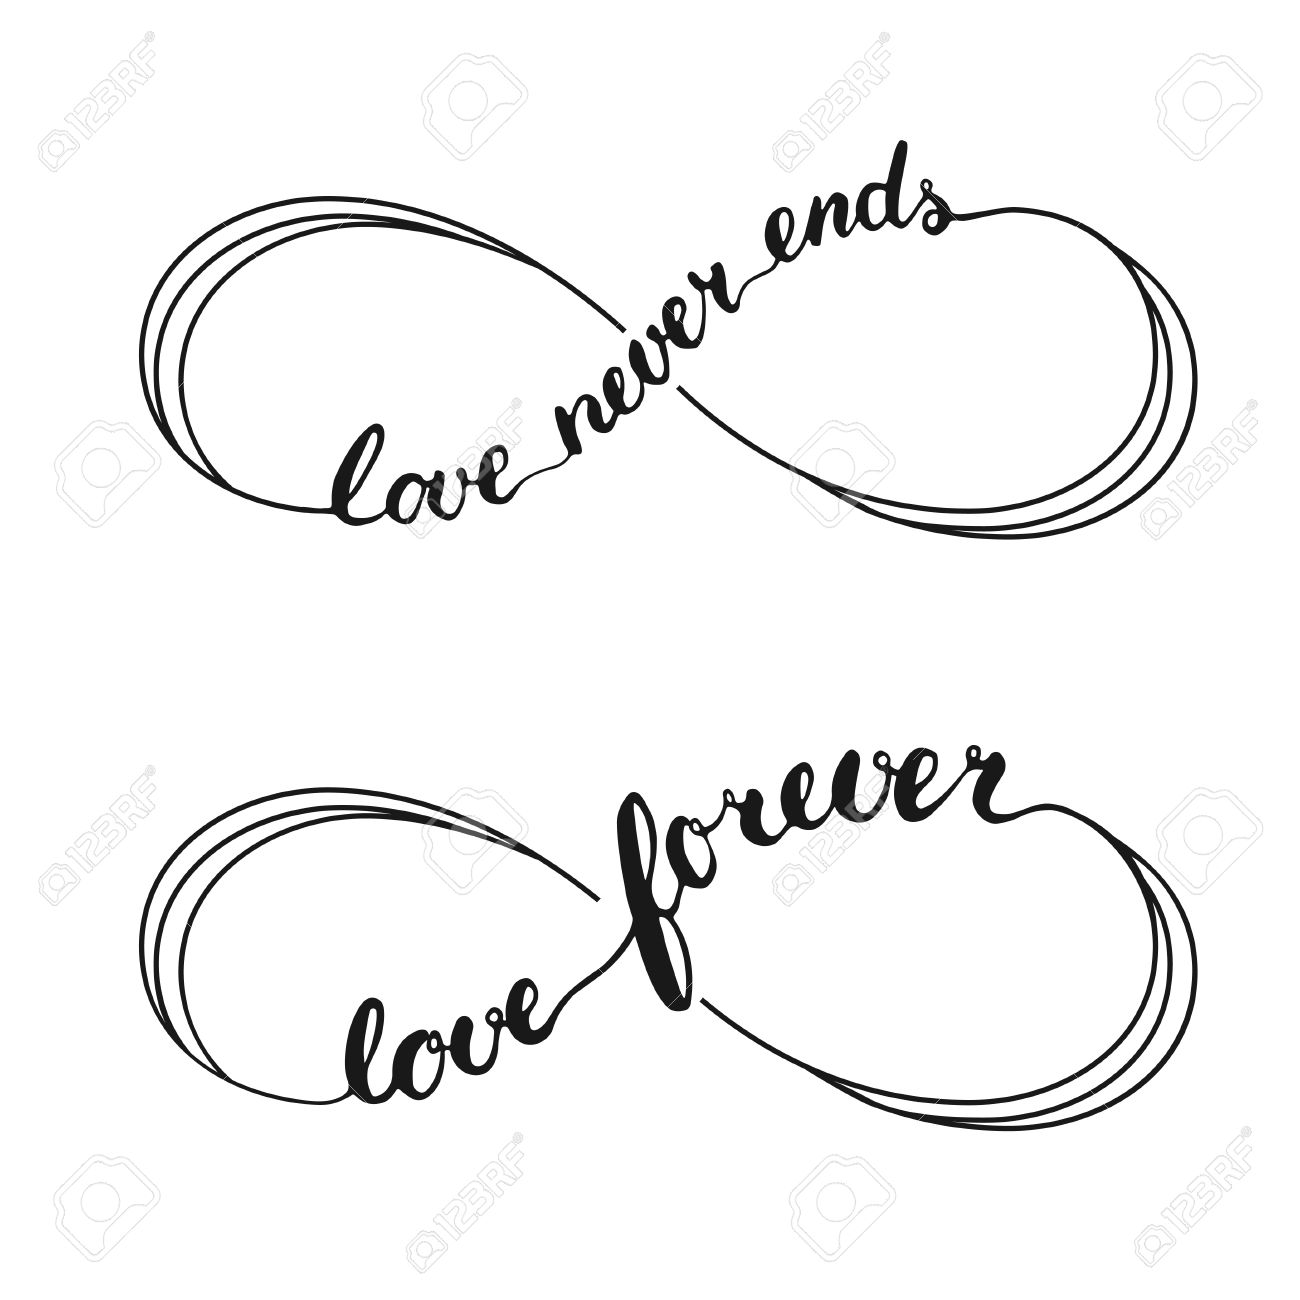 1300x1300 Infinity Love Symbol Tattoo With Infinity Sign. Hand Written